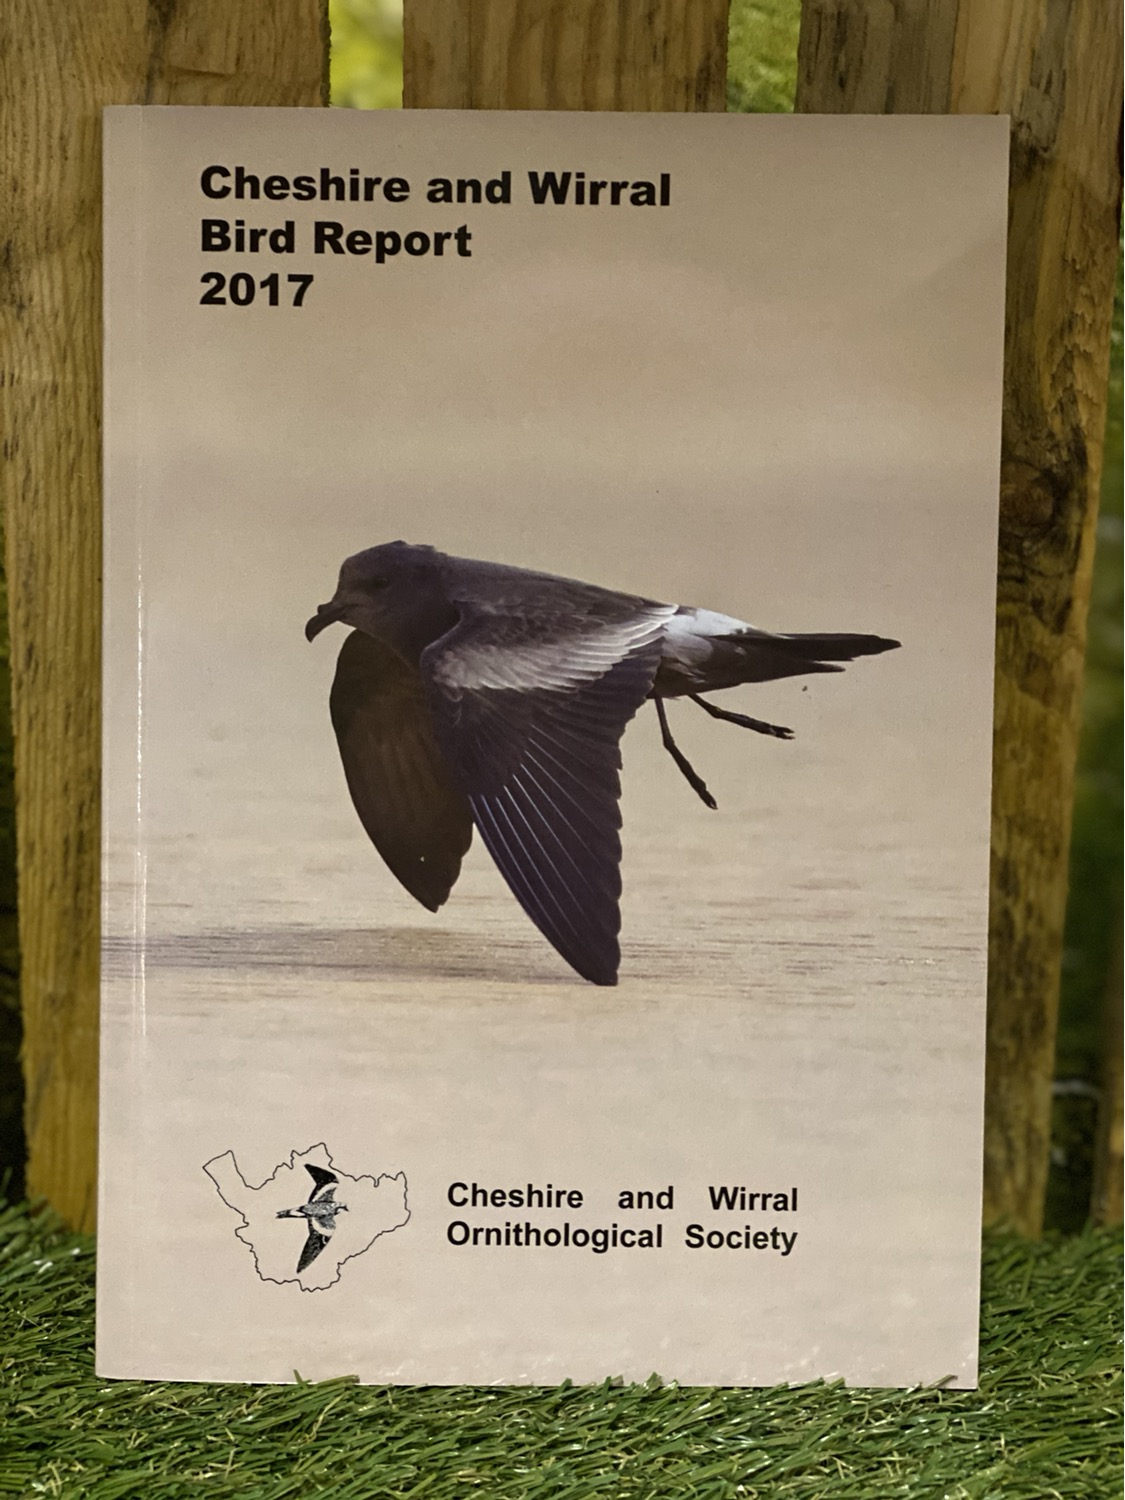 Cheshire and Wirral Bird report 2017